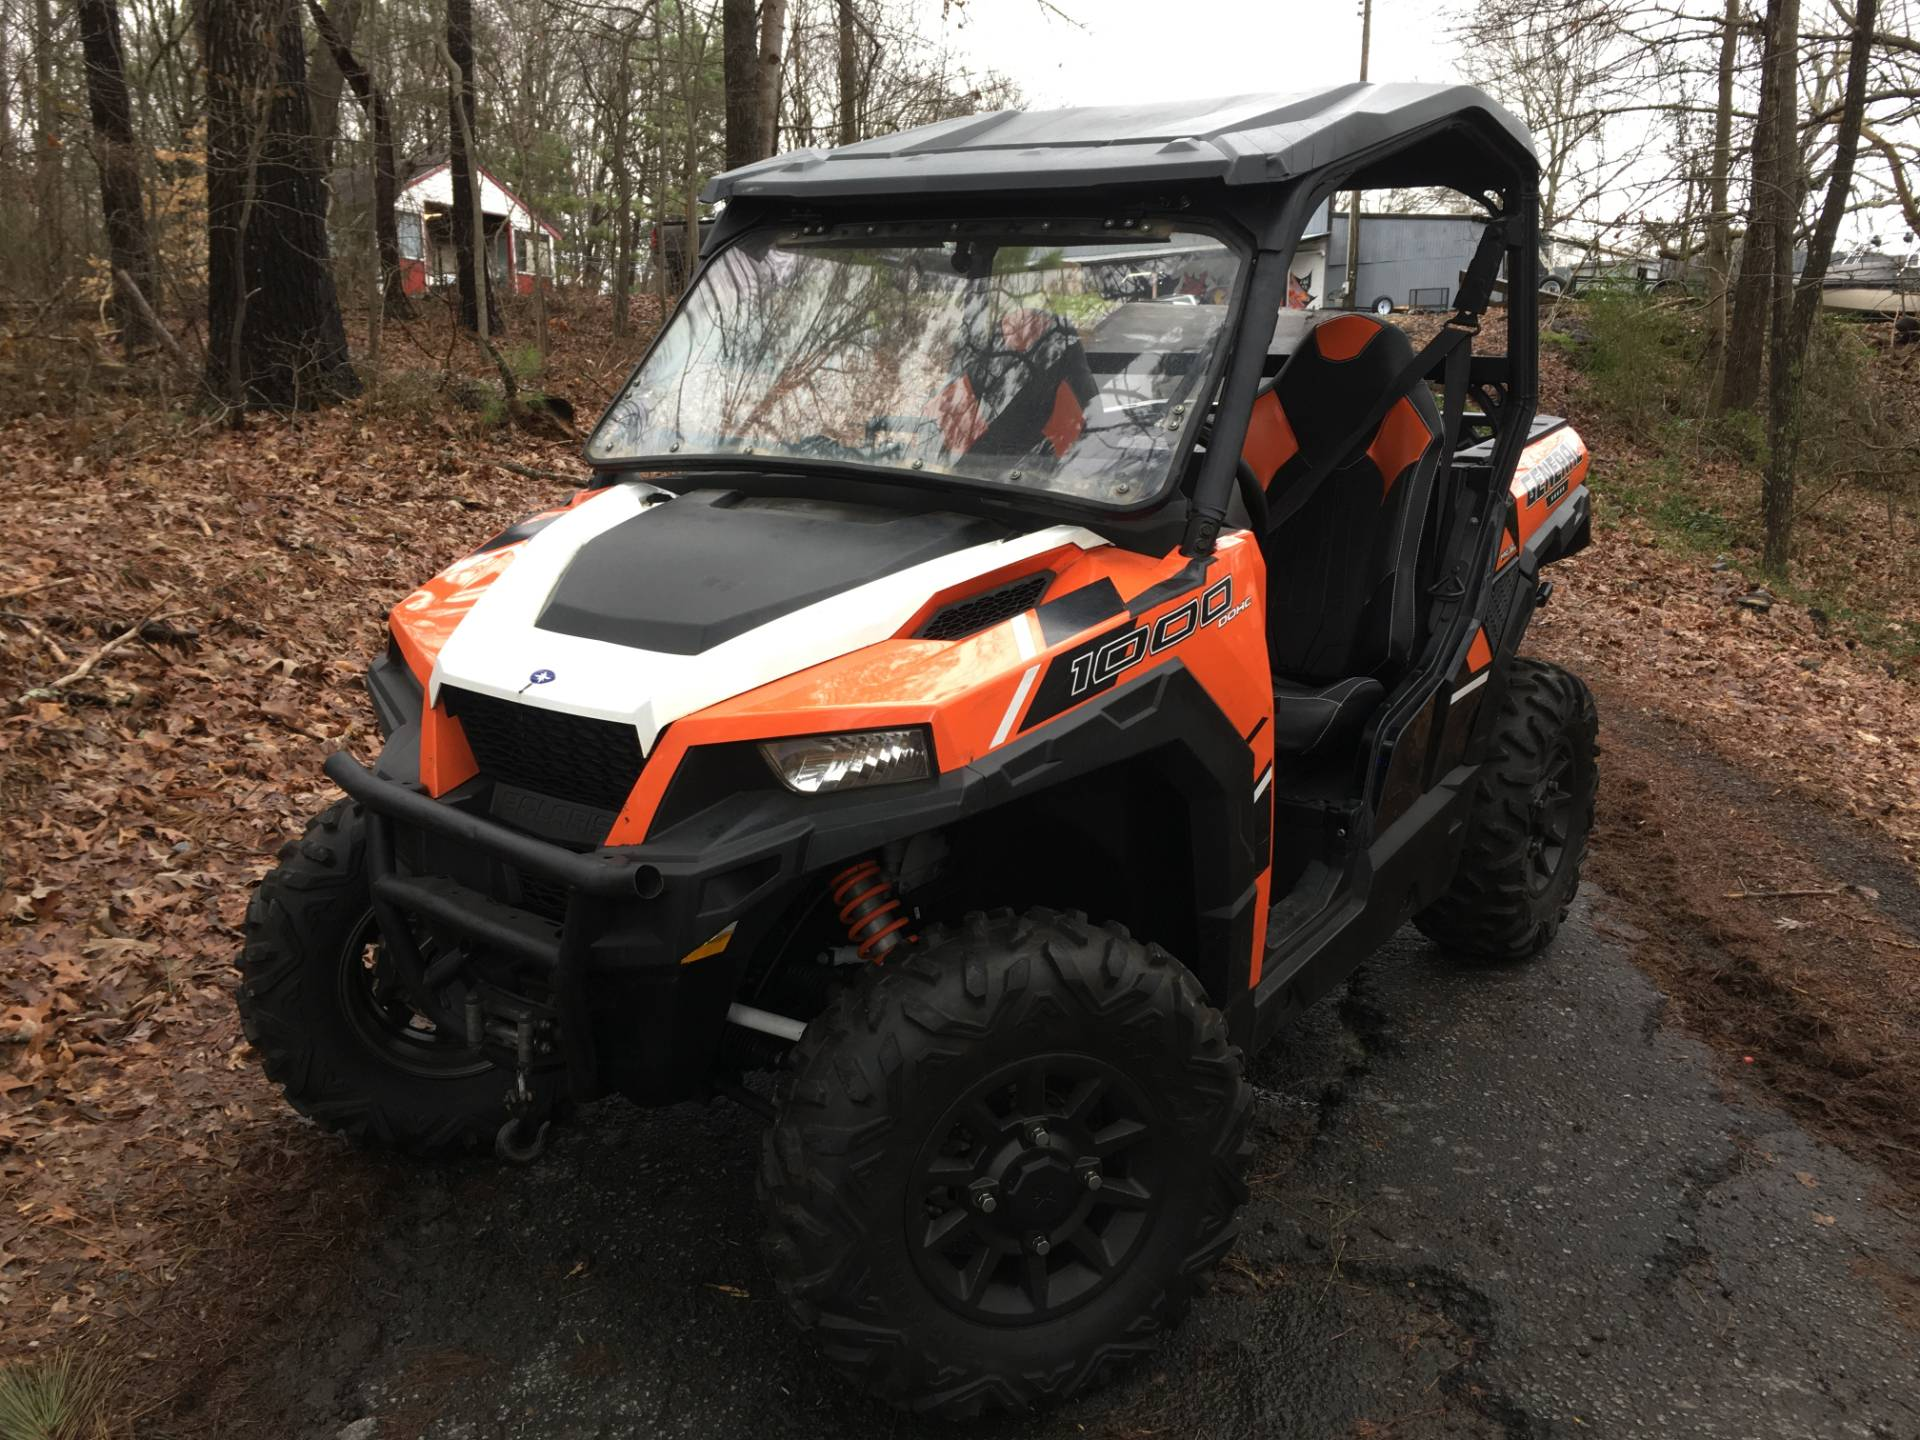 2016 POLARIS GENERAL 1000 EPS in Woodstock, Georgia - Photo 1